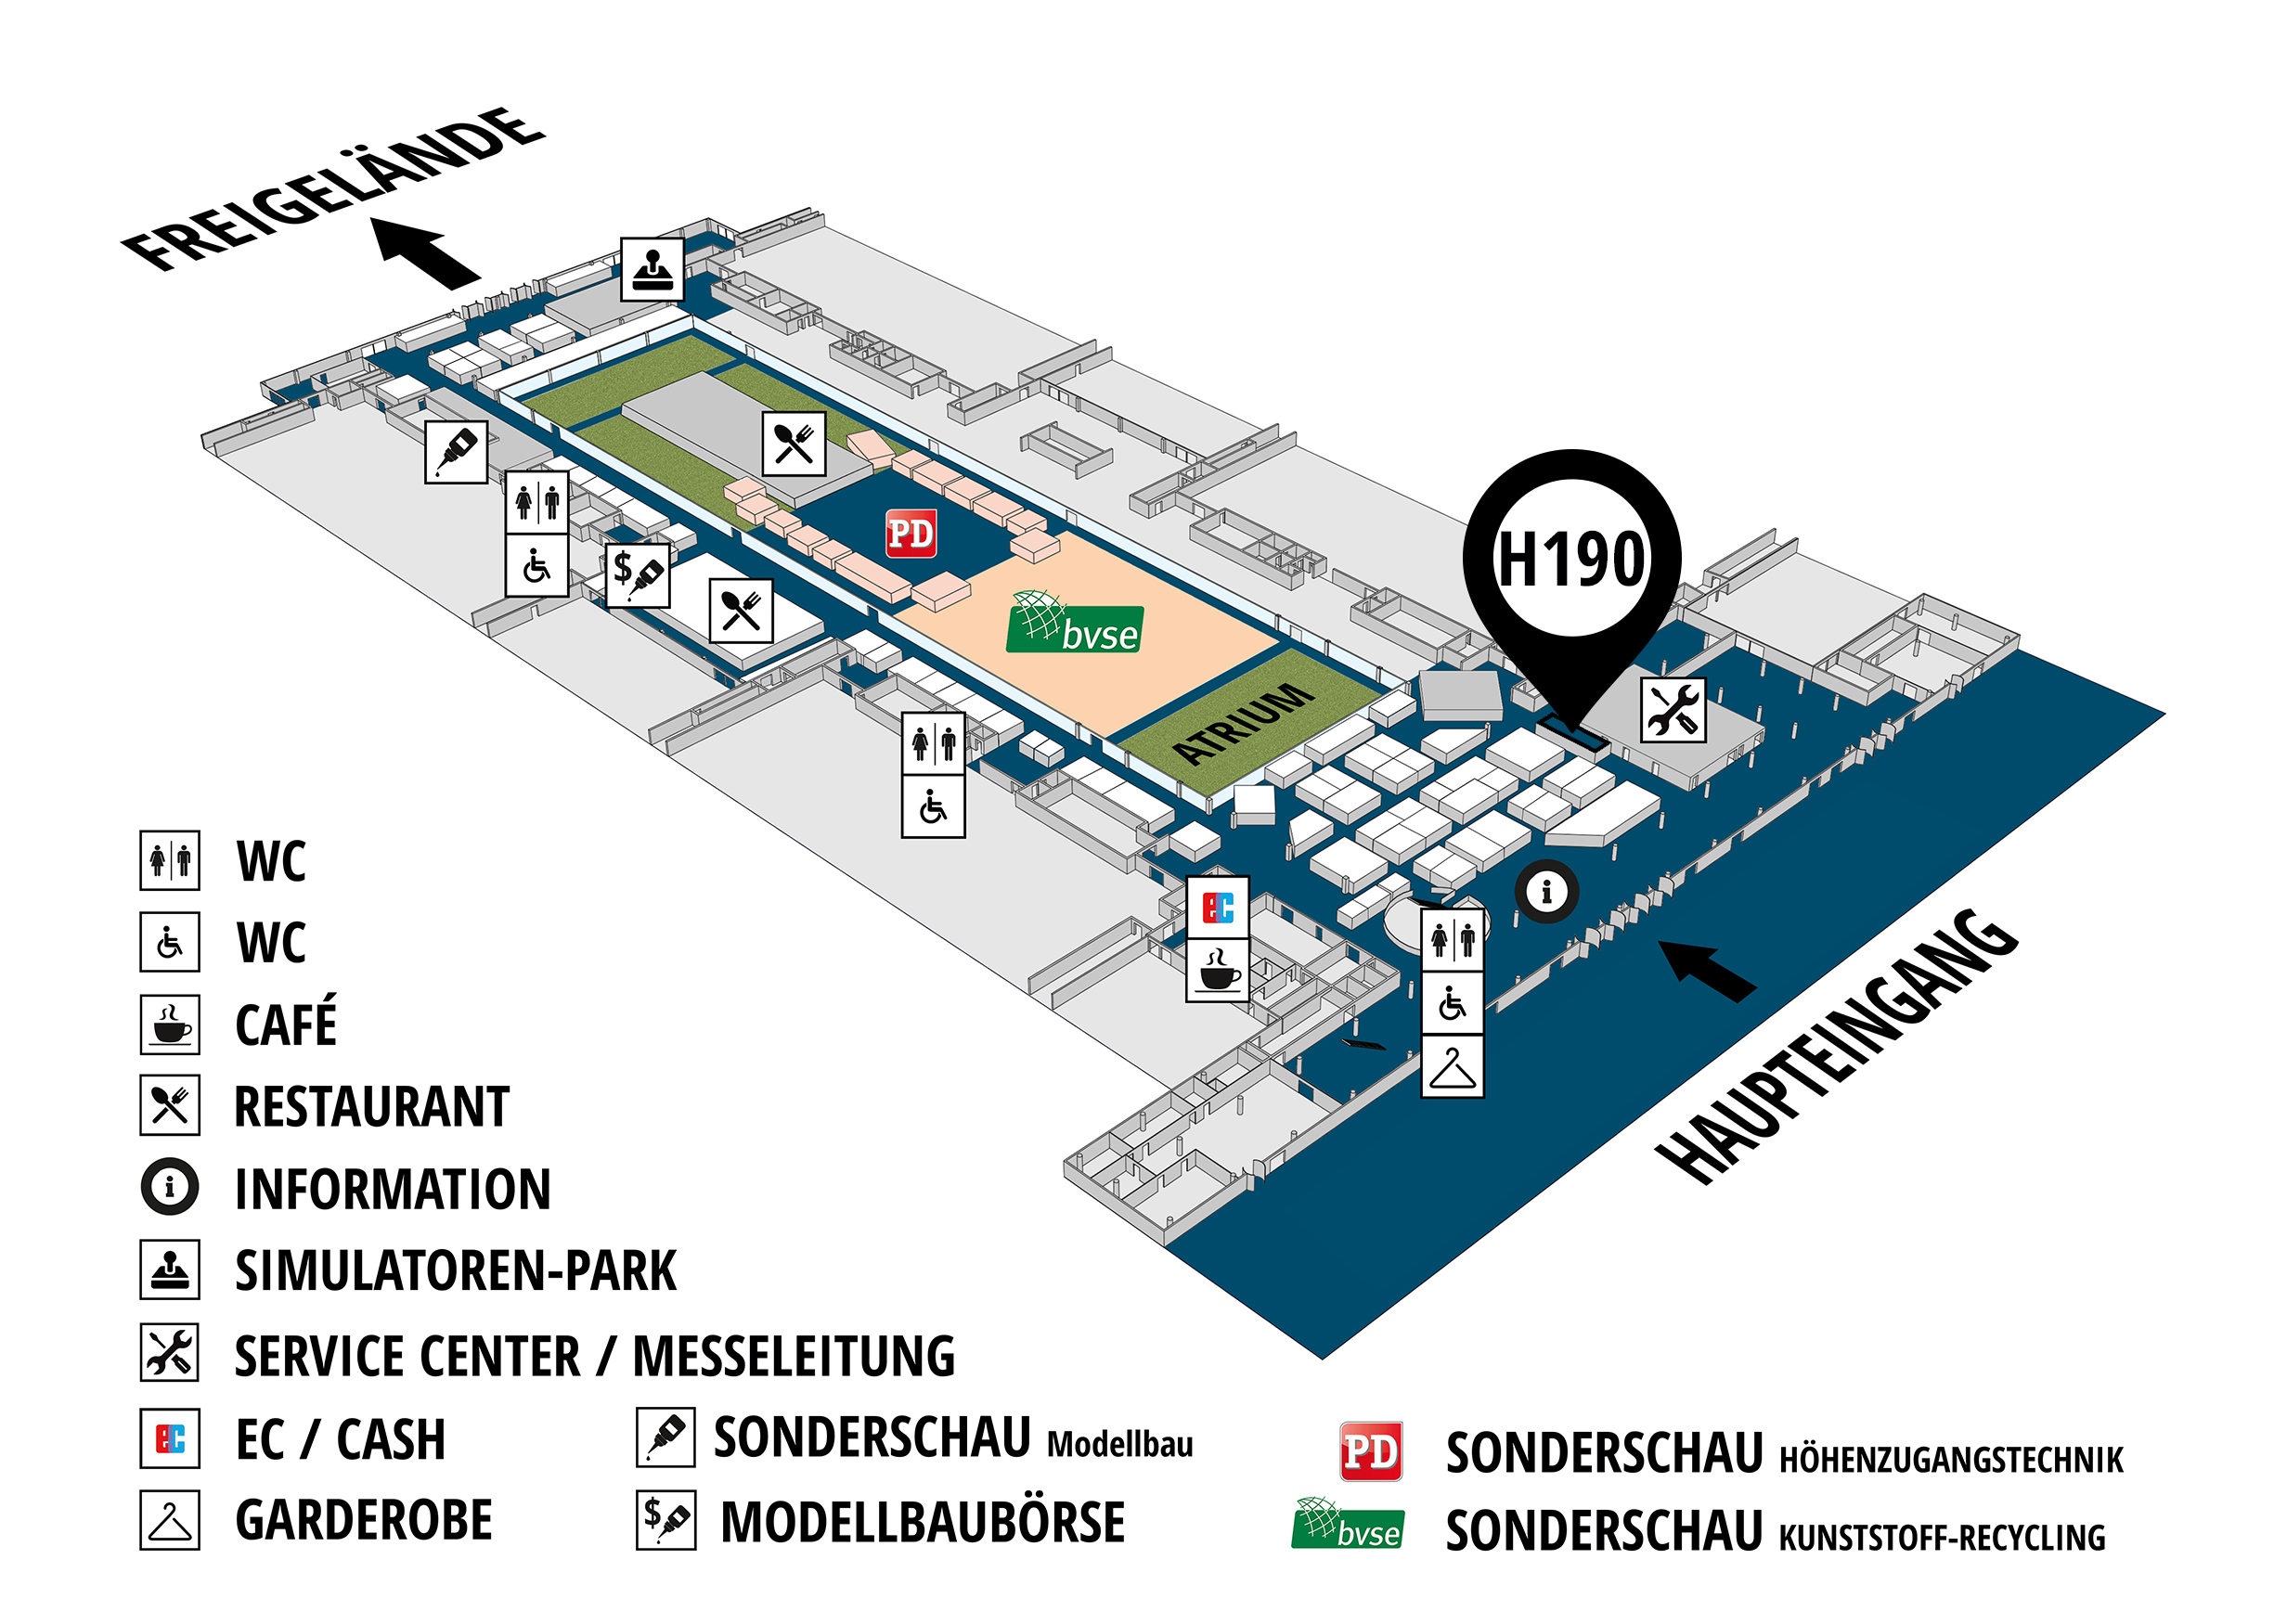 RecyclingAKTIV & TiefbauLIVE 2019. The Demonstration Trade Fairs ||Demonstration trade fair for waste removal and recycling. Demonstration trade fair for road construction and civil engineering. hall map (Visitors circuit): stand H190